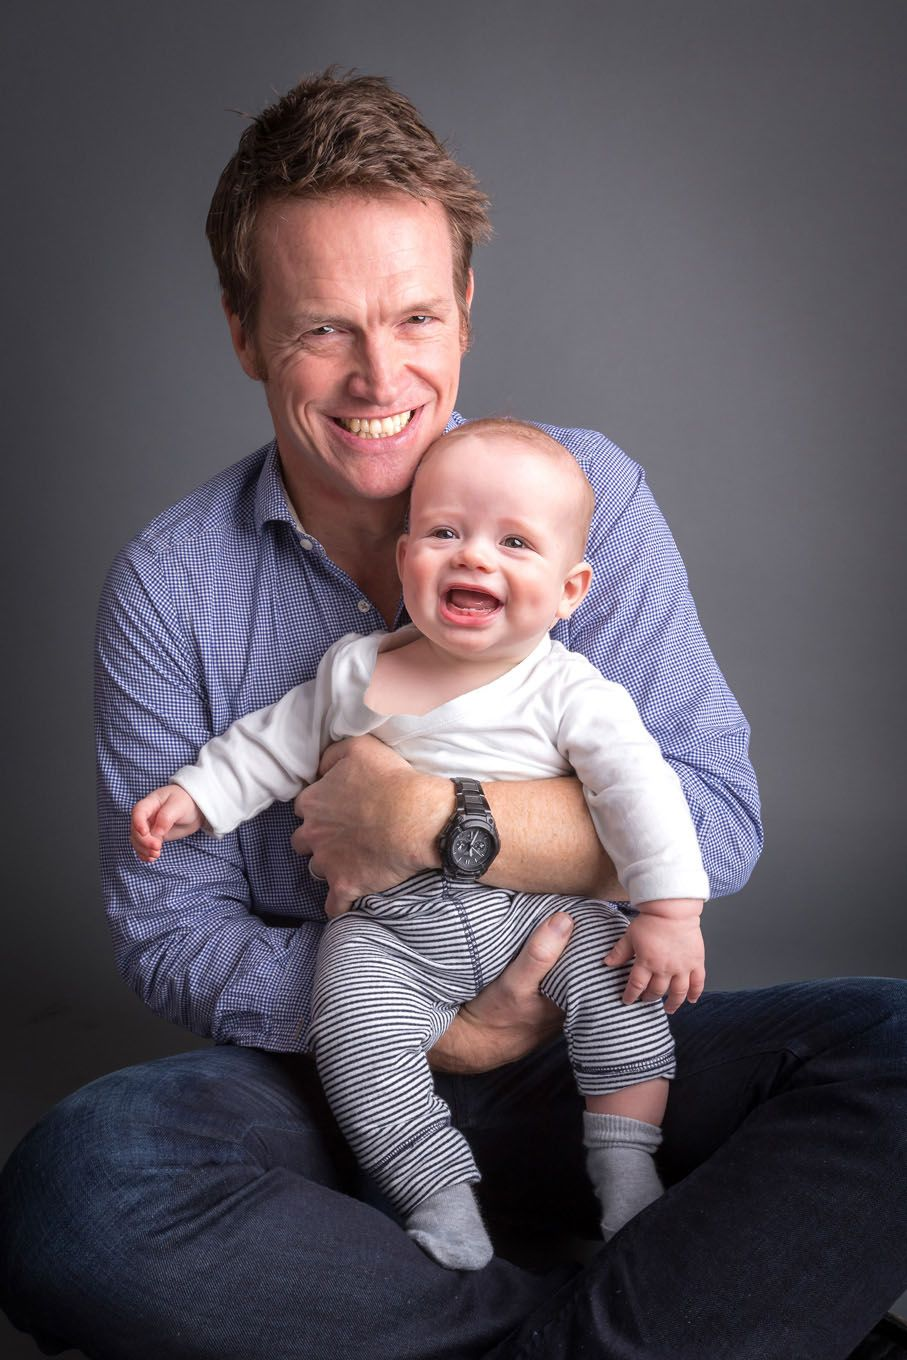 Portrait of a baby boy and his dad in a studio with backdrop and lighting equipment